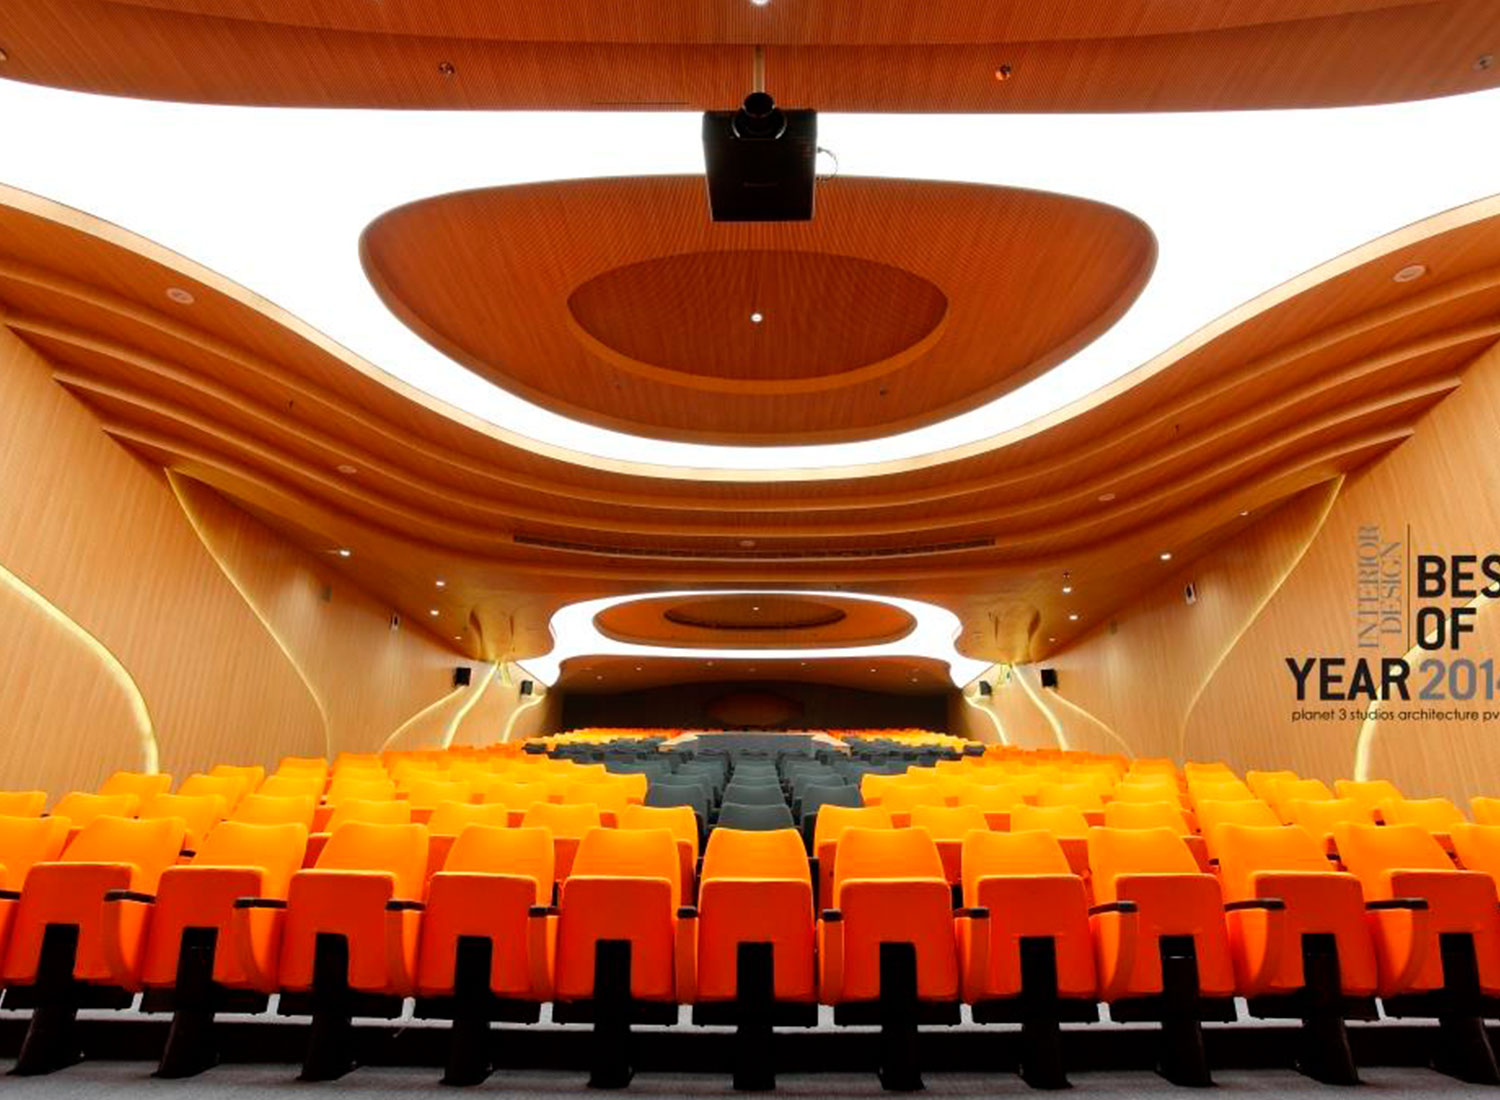 Vidyalankar - Stretch Ceiling Translucent with Backlighting in auditorium - Auditorium